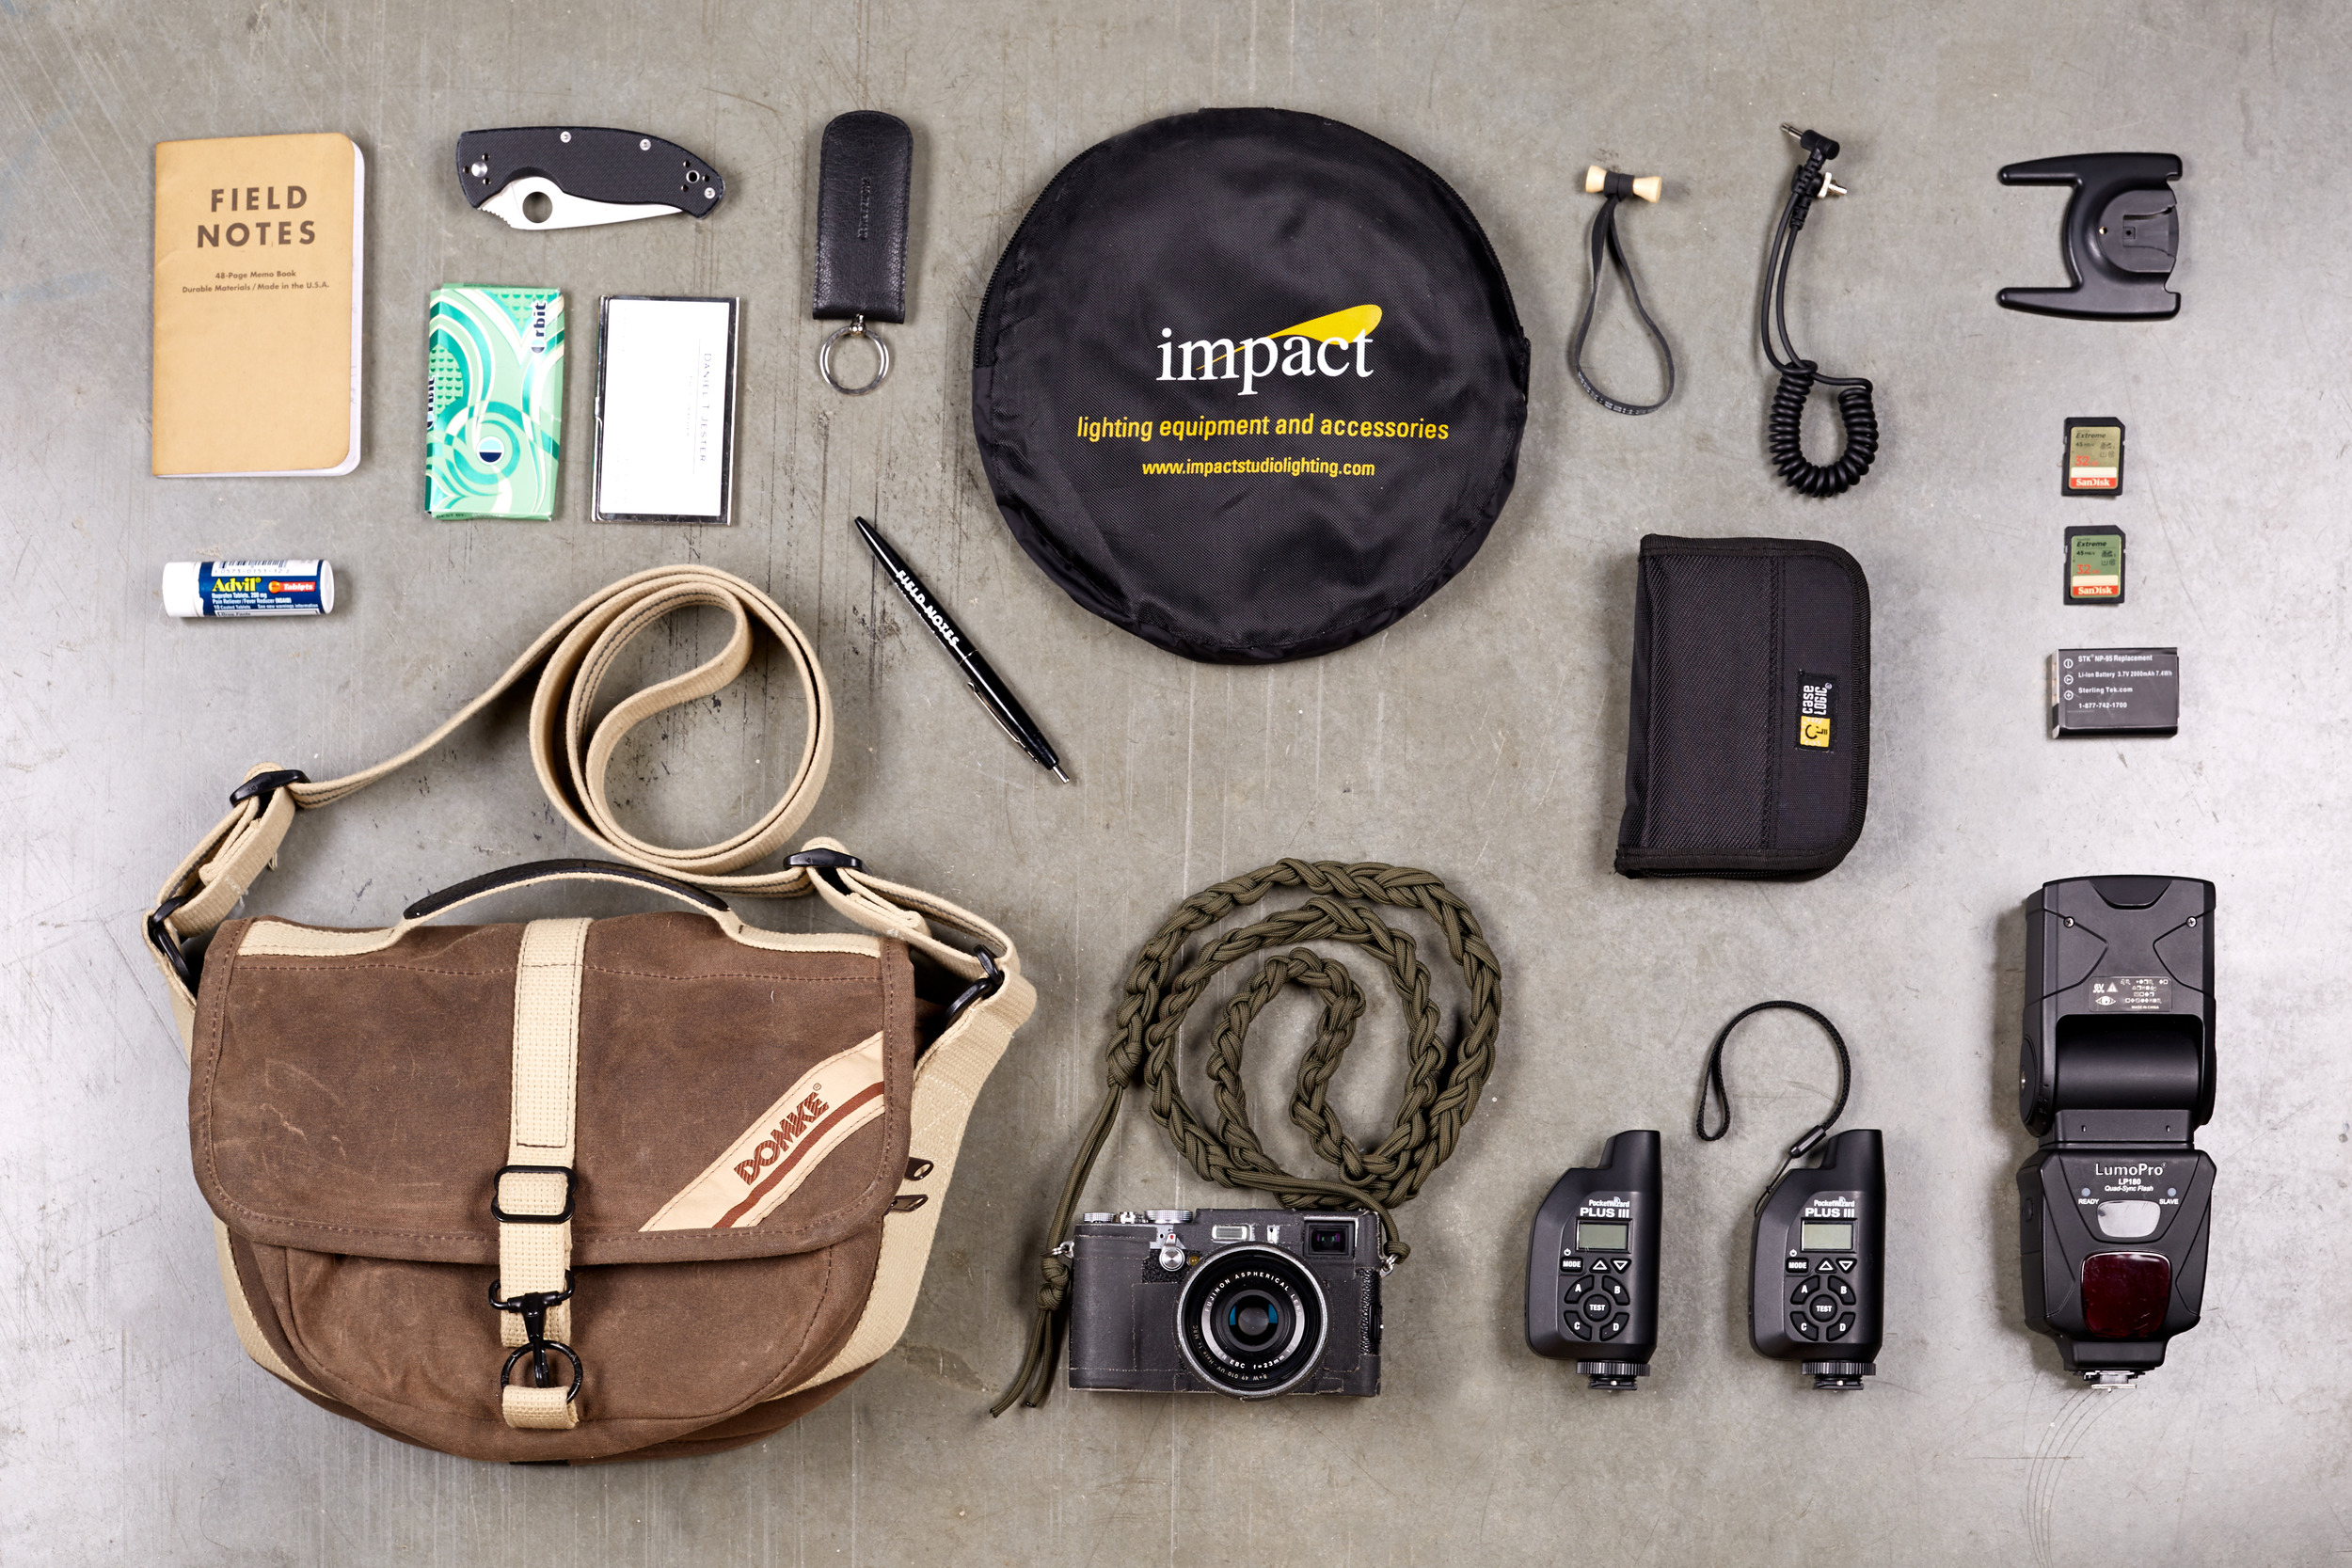 My everyday photo kit. A small but powerful kit that is perfect for everyday carry and can net you some solid results on the fly.